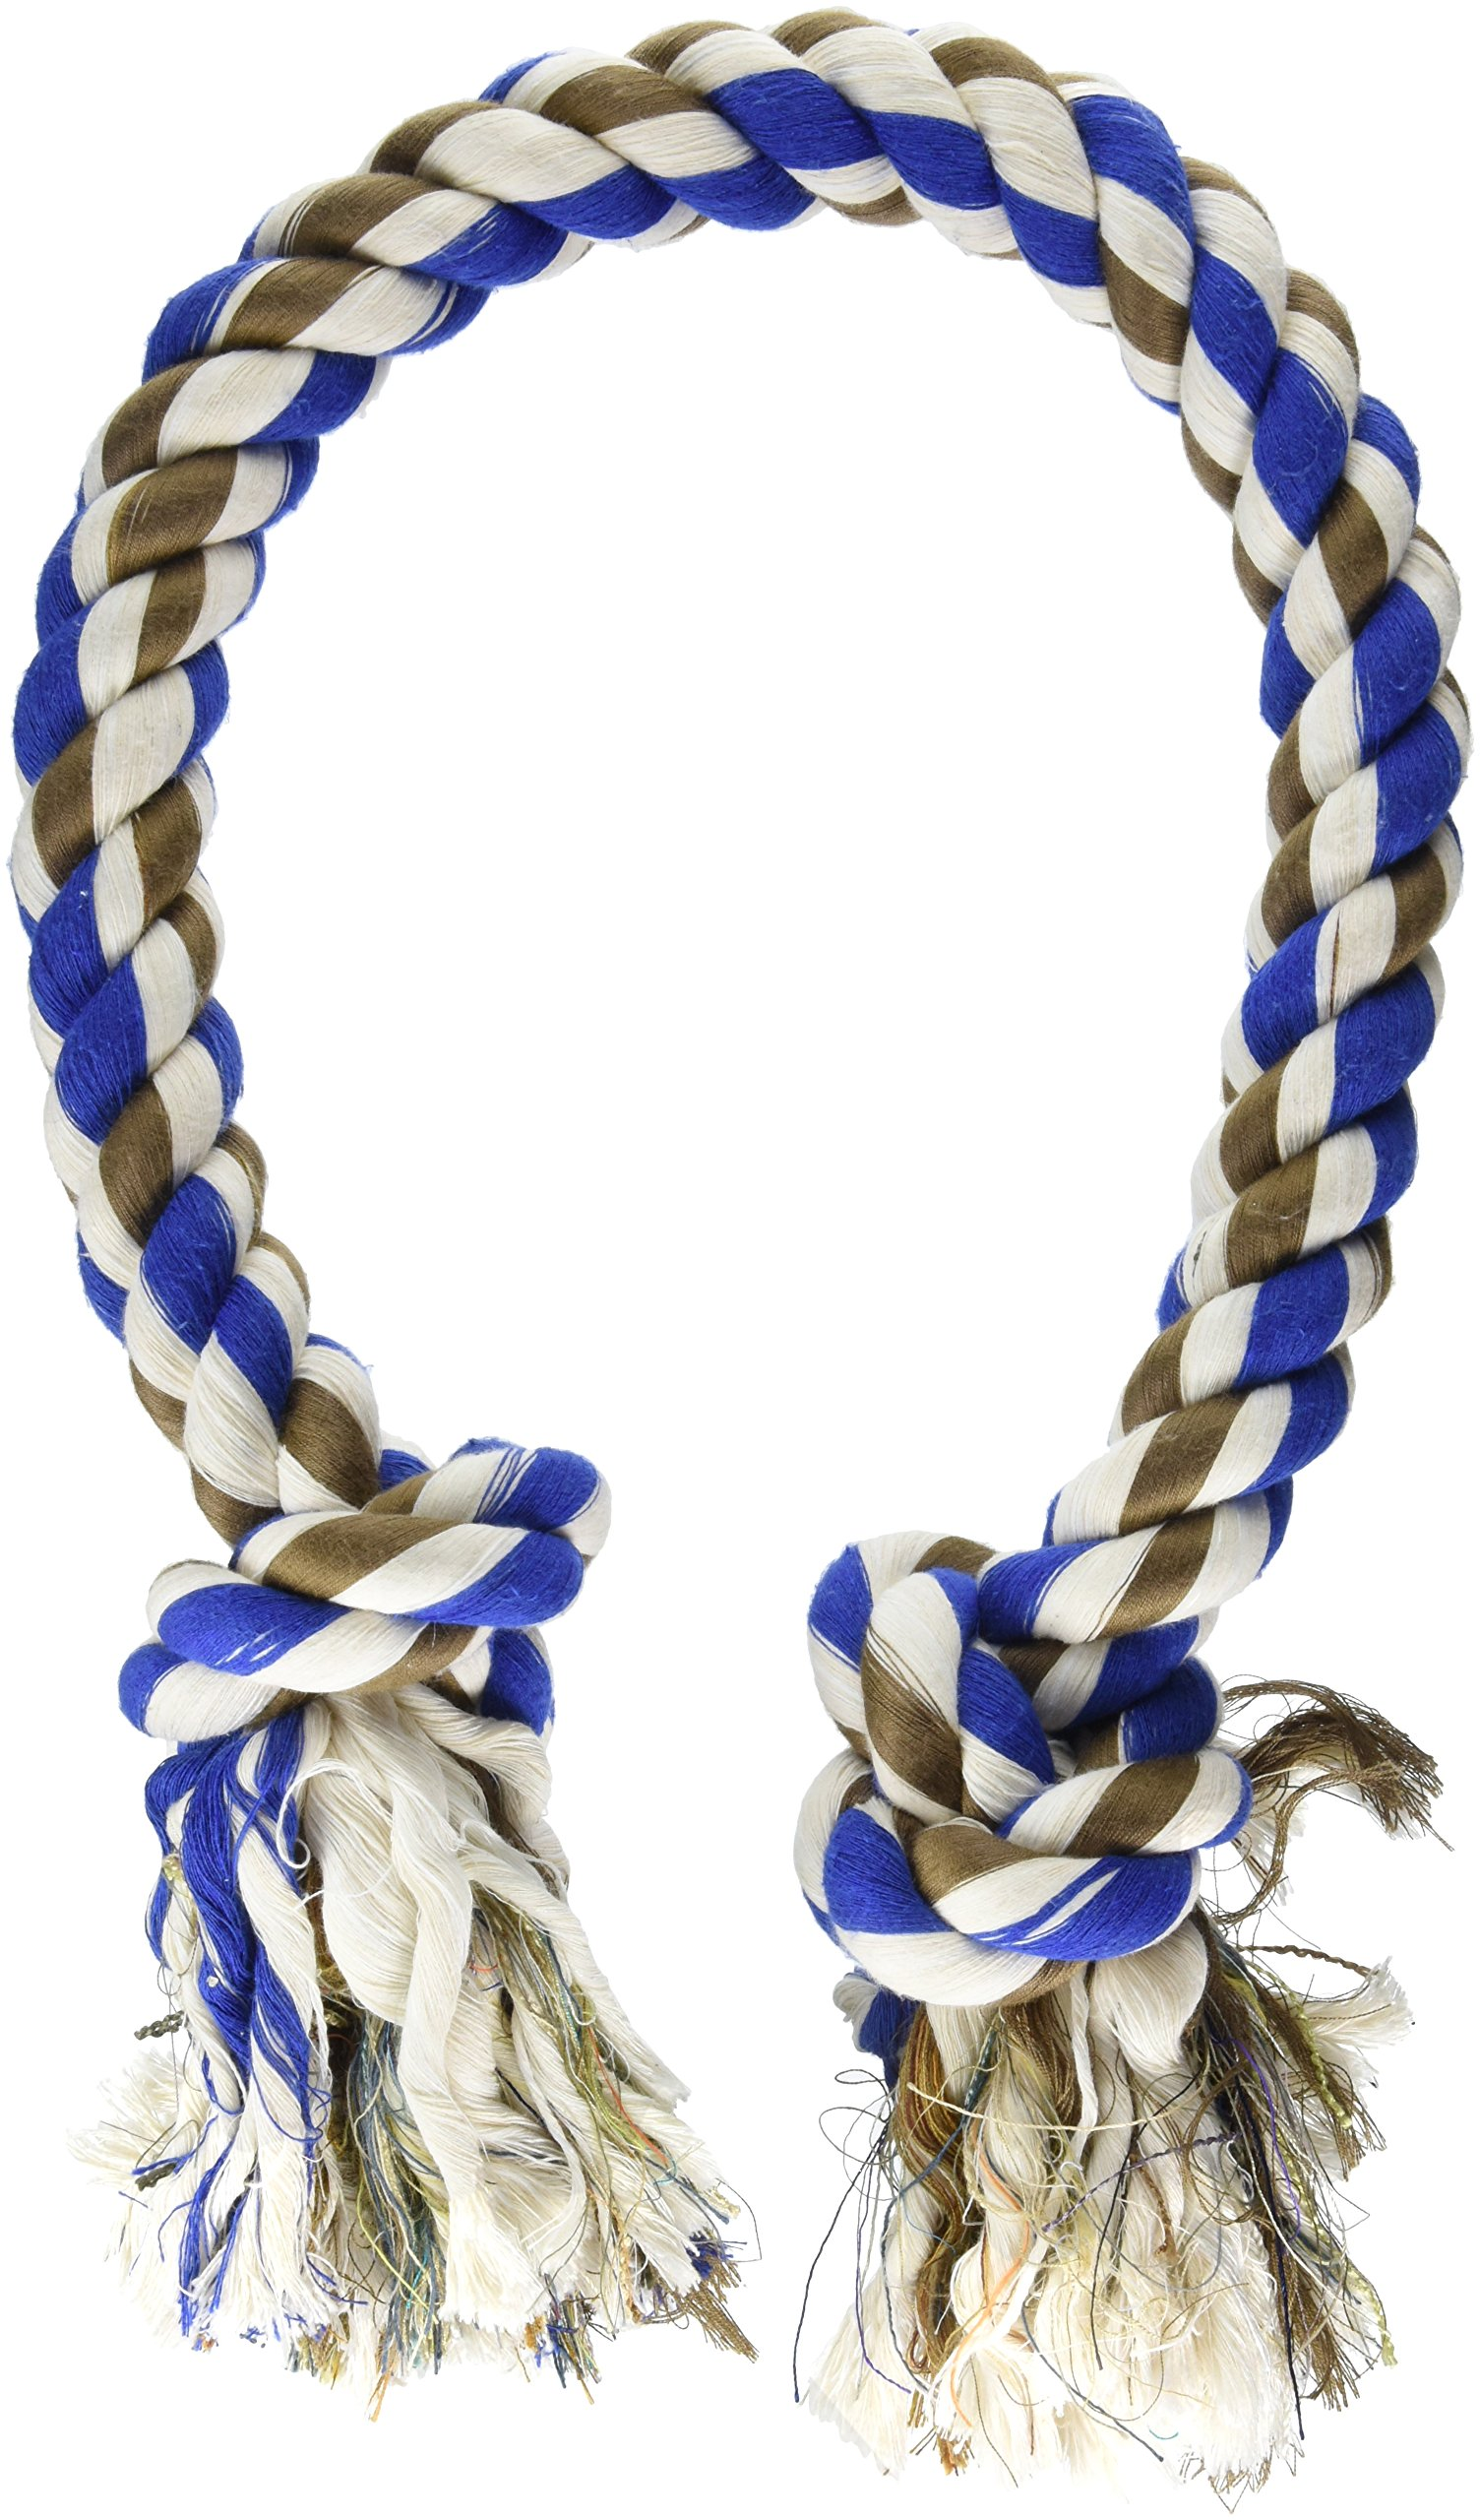 Mammoth Flossy Chews Colossal 42-Inch Cottonblend Color 2-Knot Rope Tug by Mammoth (Image #1)